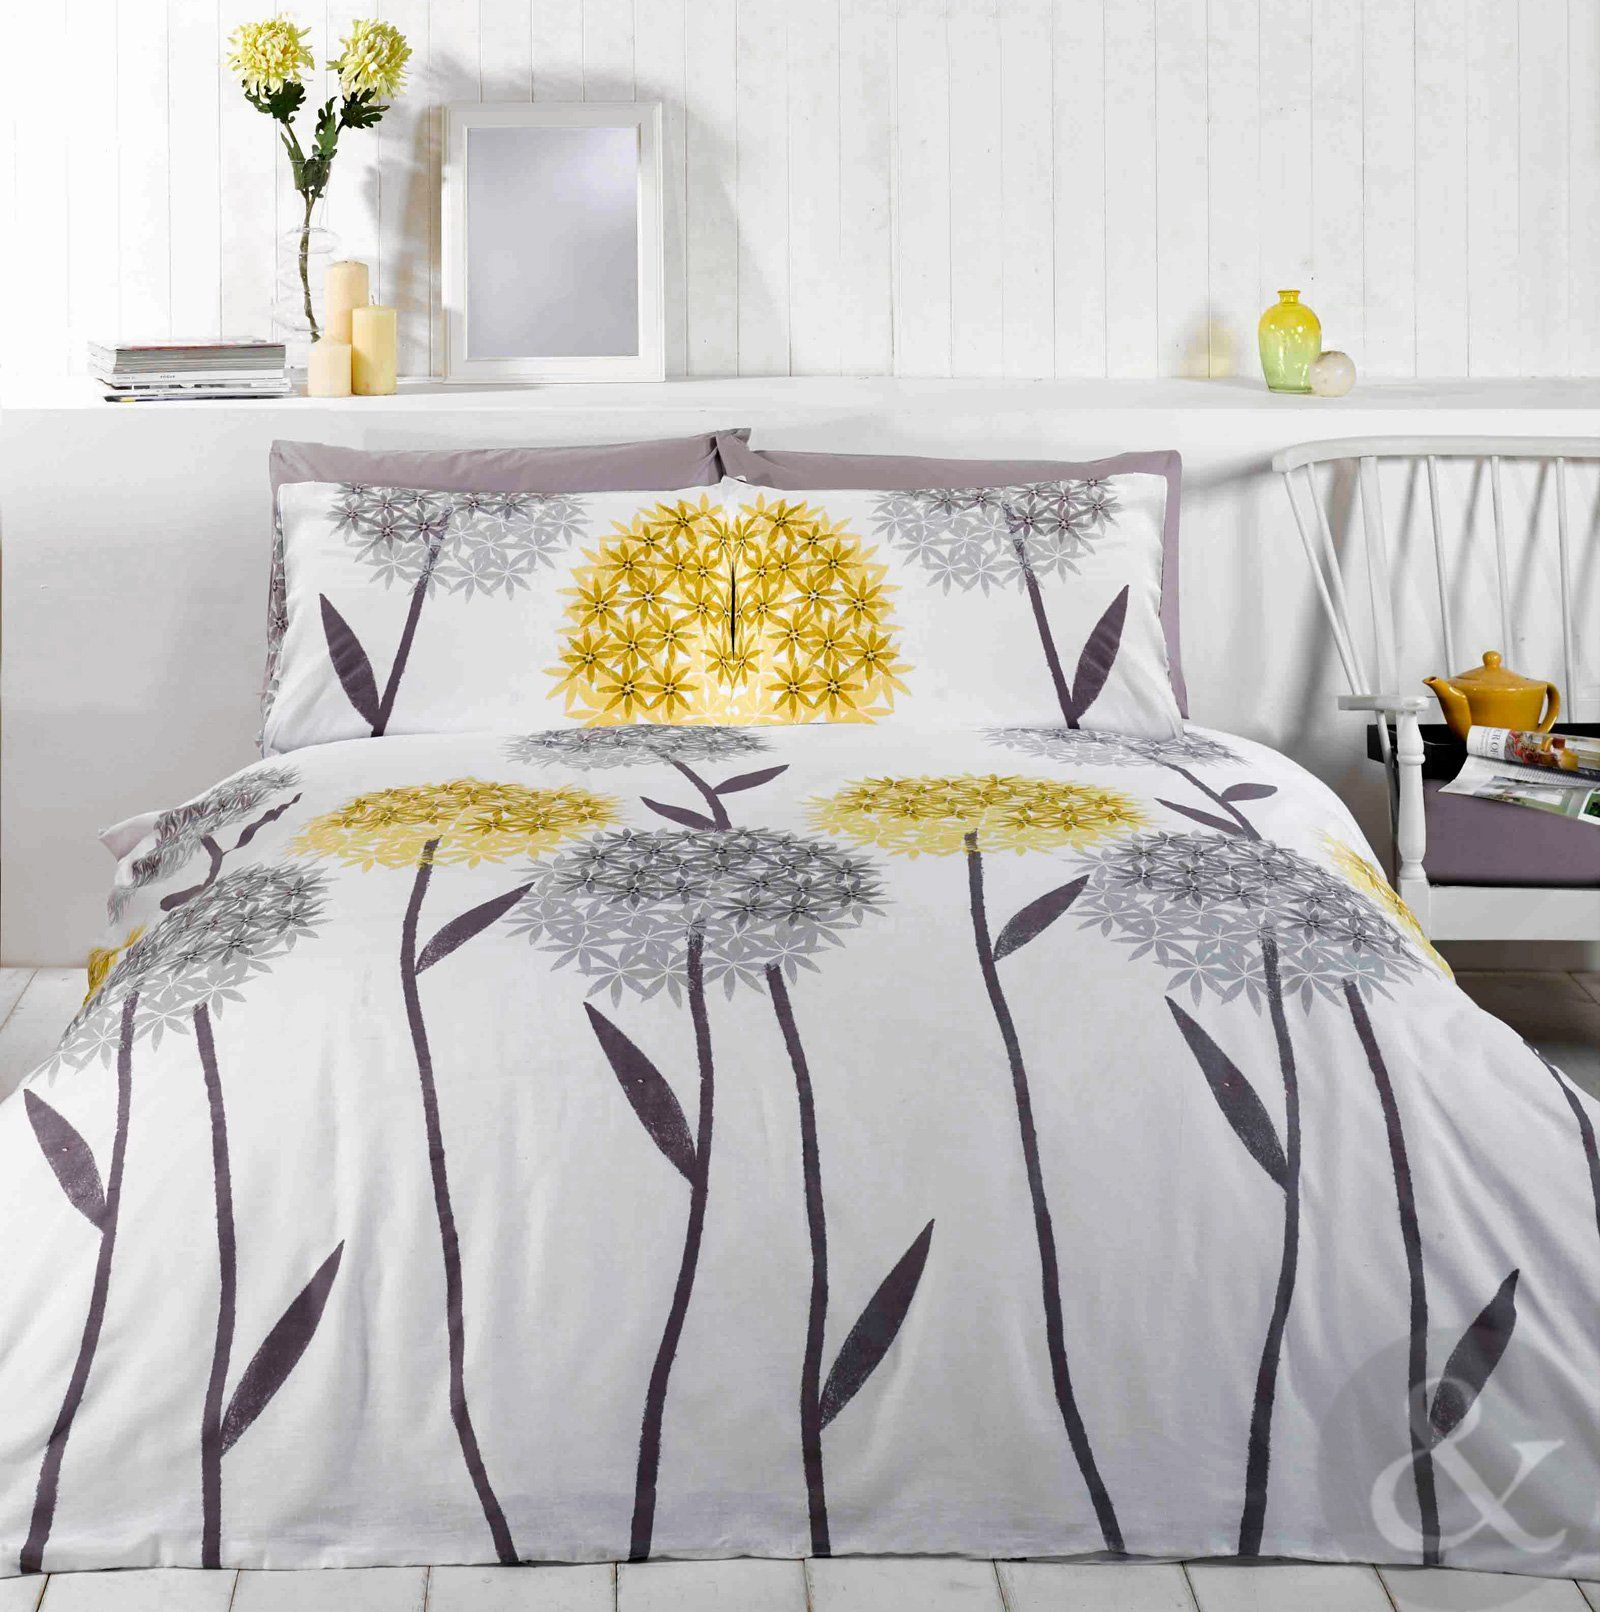 ALLIUM FLORAL DUVET COVER Contemporary Printed White Yellow & Grey